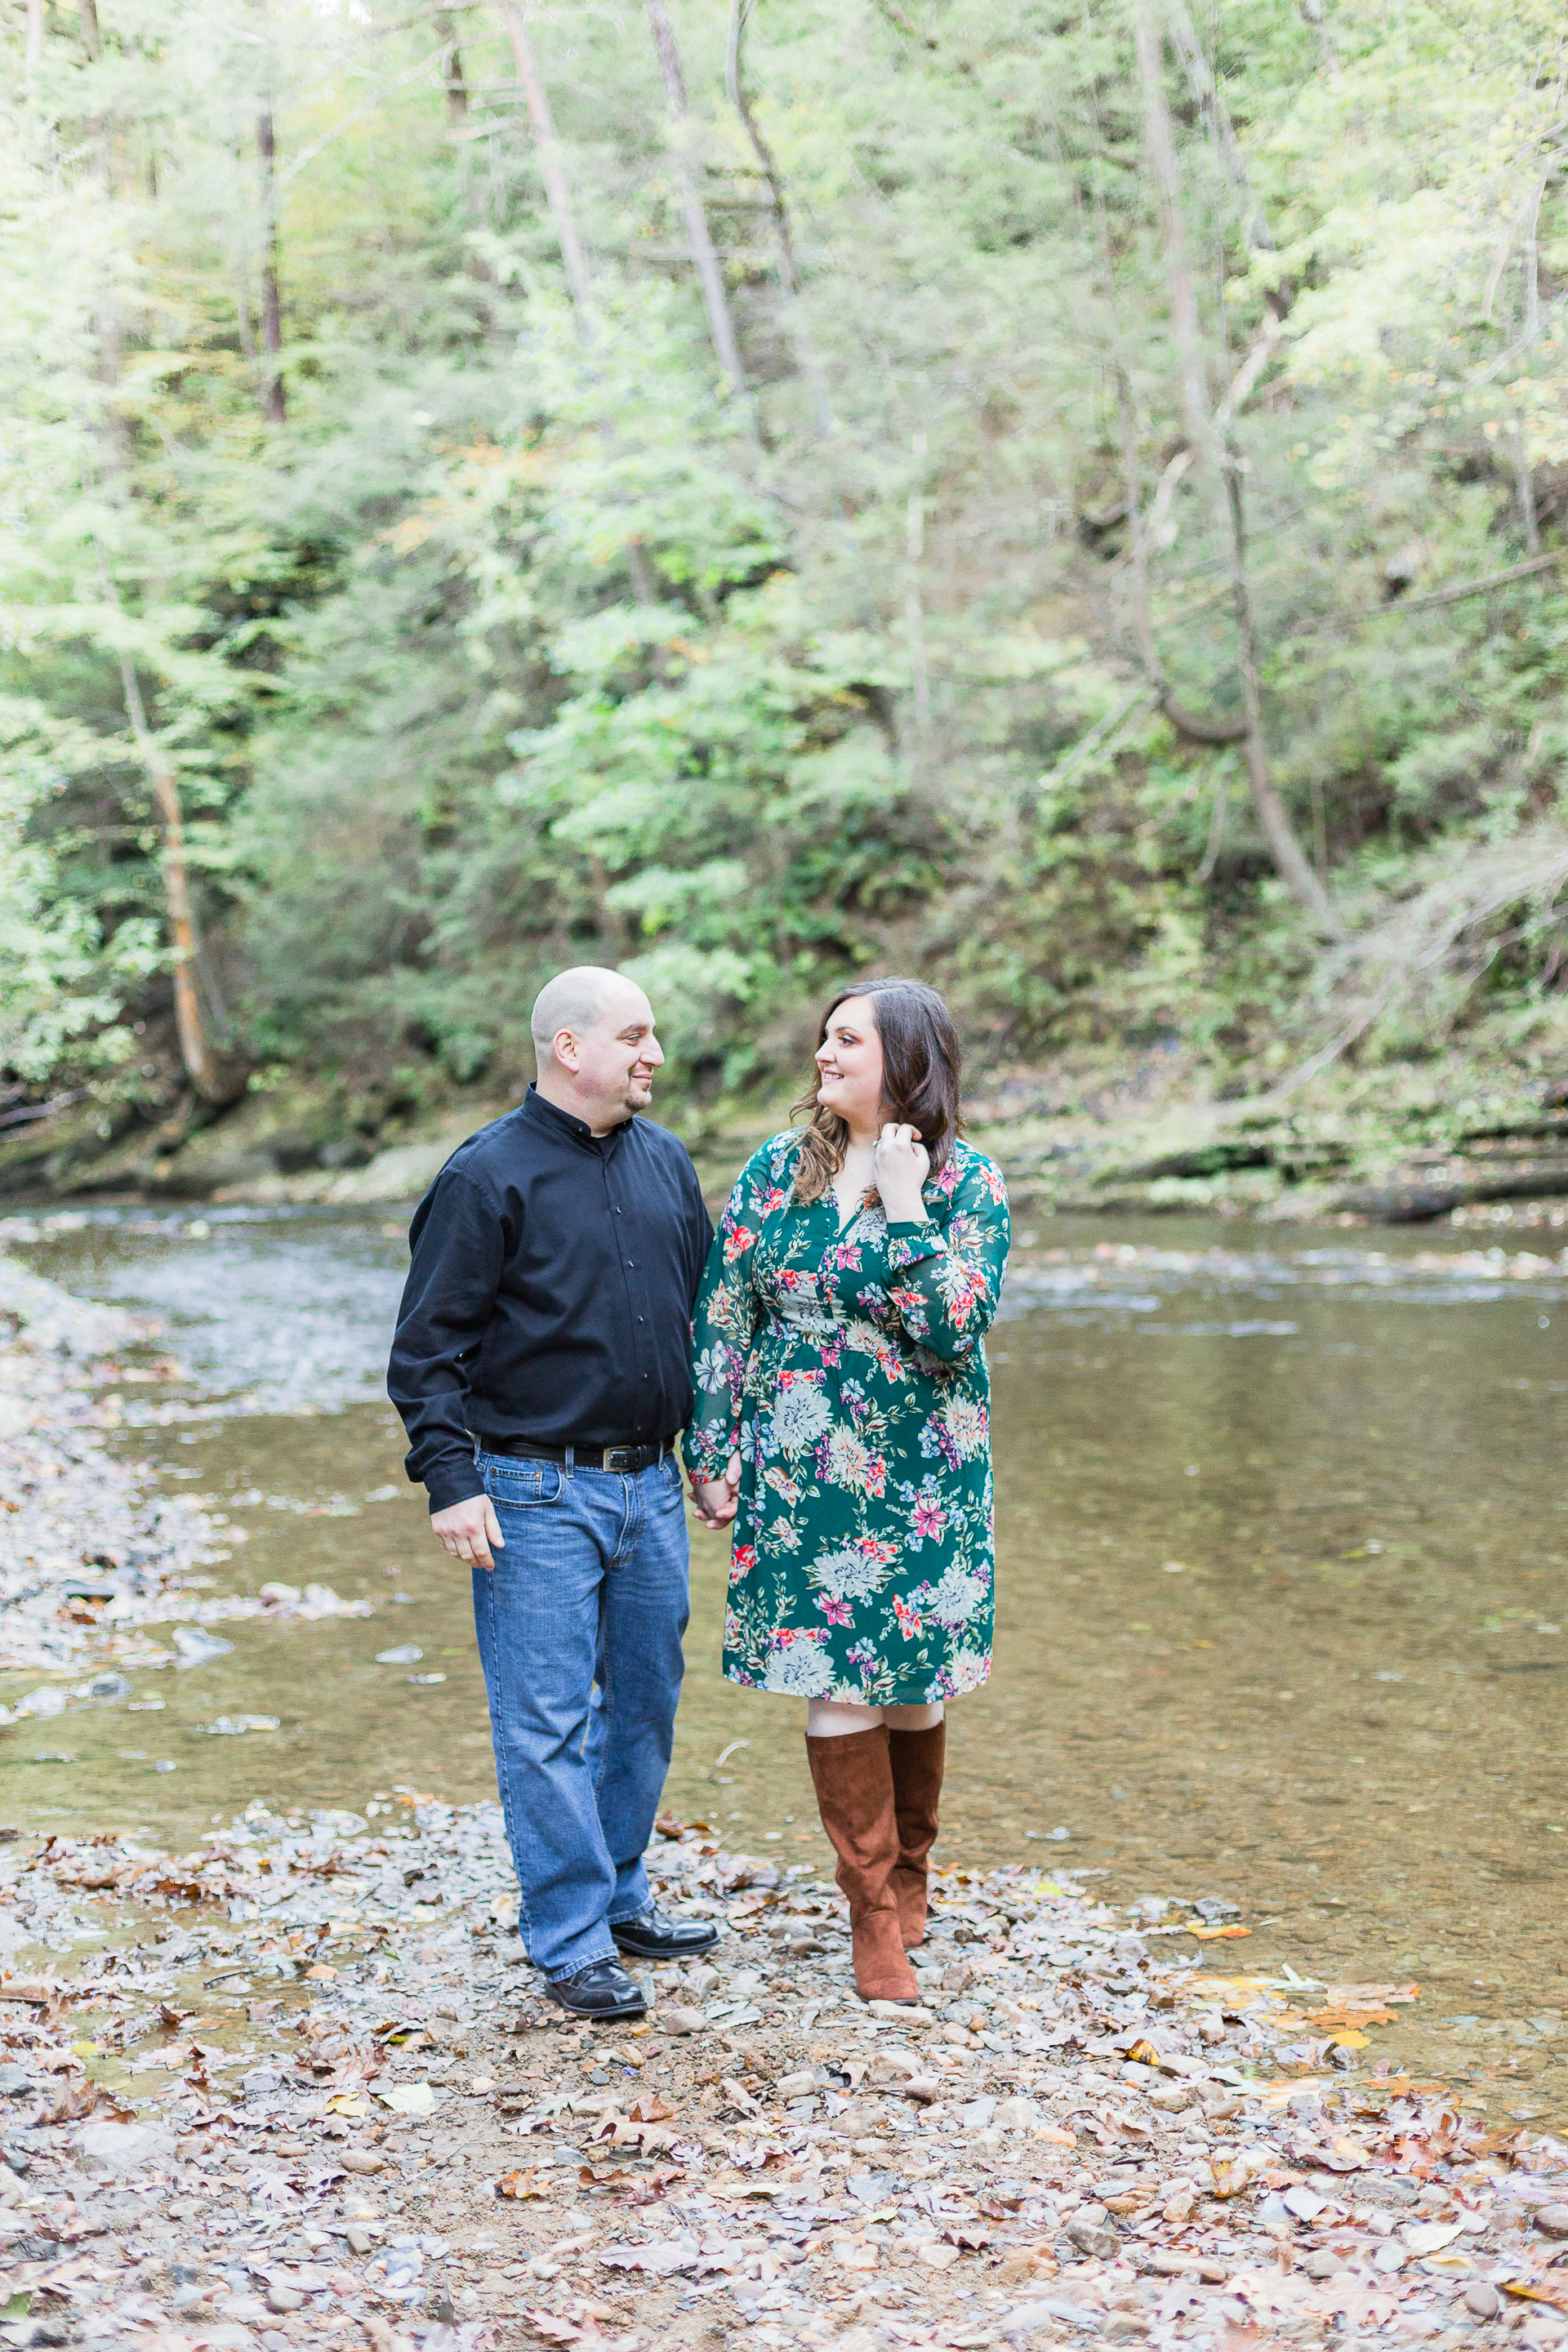 Jacobsburg State Park Nazareth Pennsylvania Woodsy Fall Engagement Session wedding and lifestyle photographer Lytle Photo Co (39 of 64).jpg